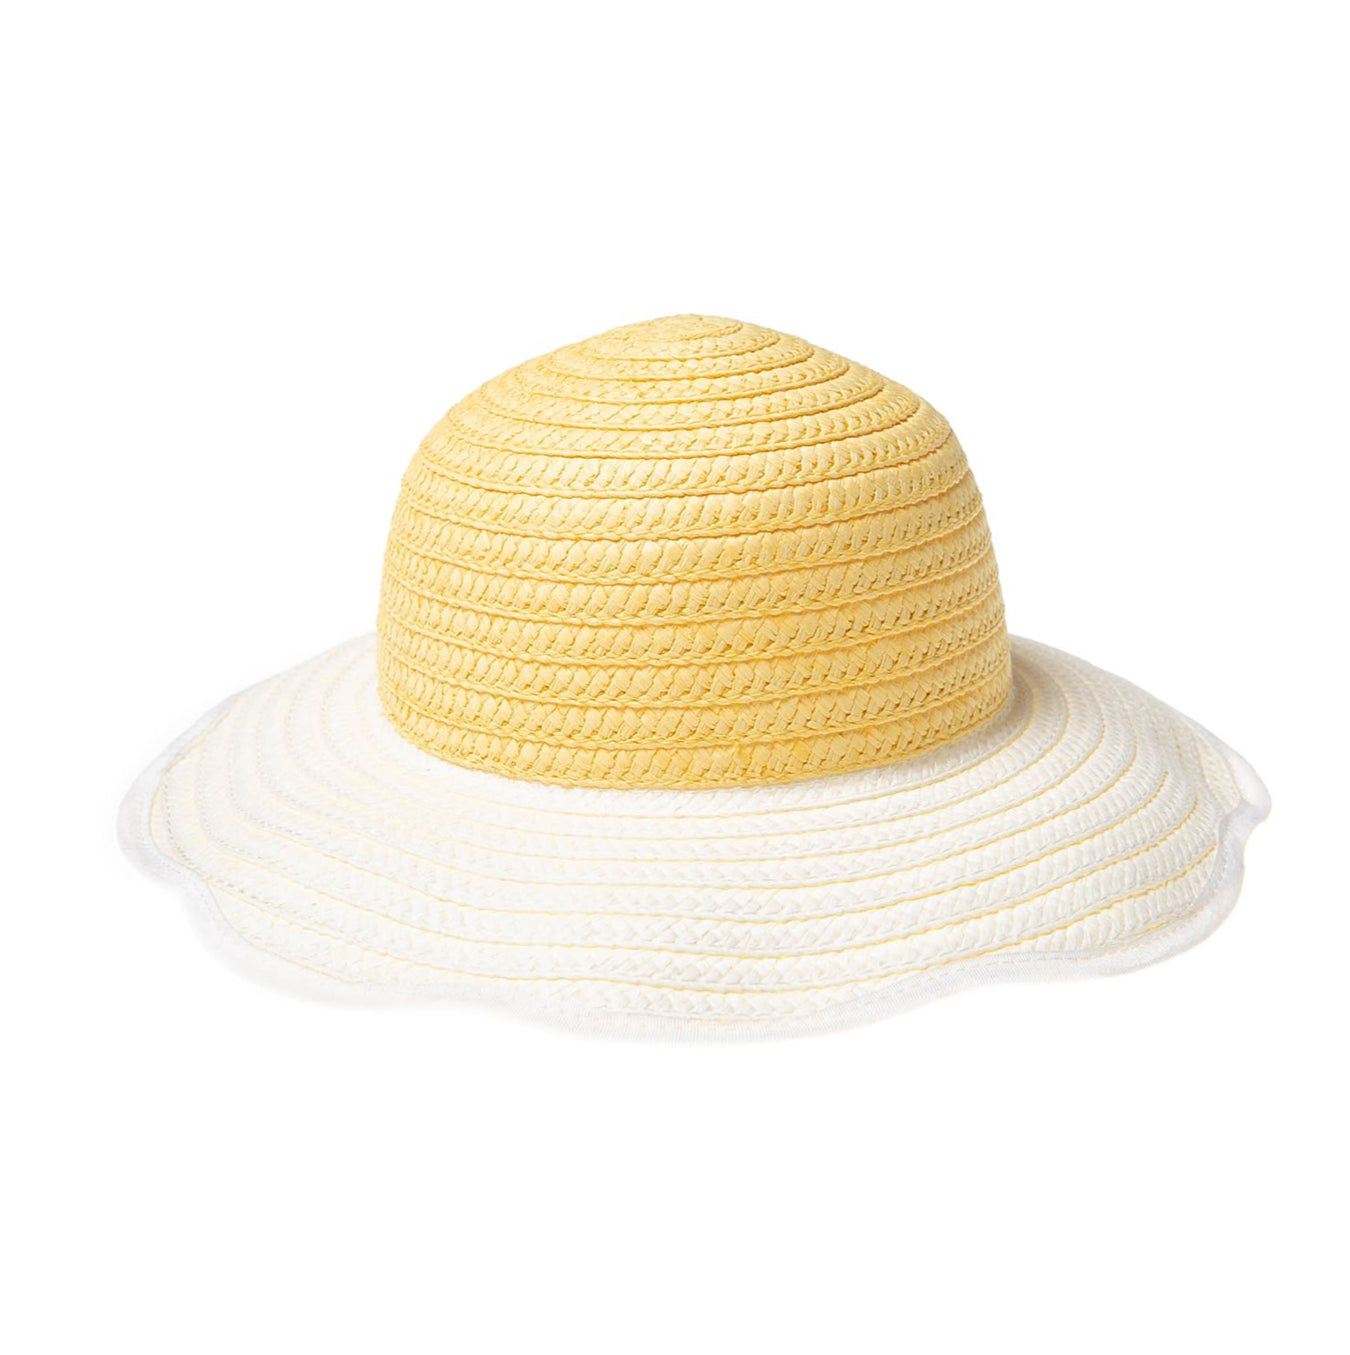 Daisy Sun Hat from Rockahula